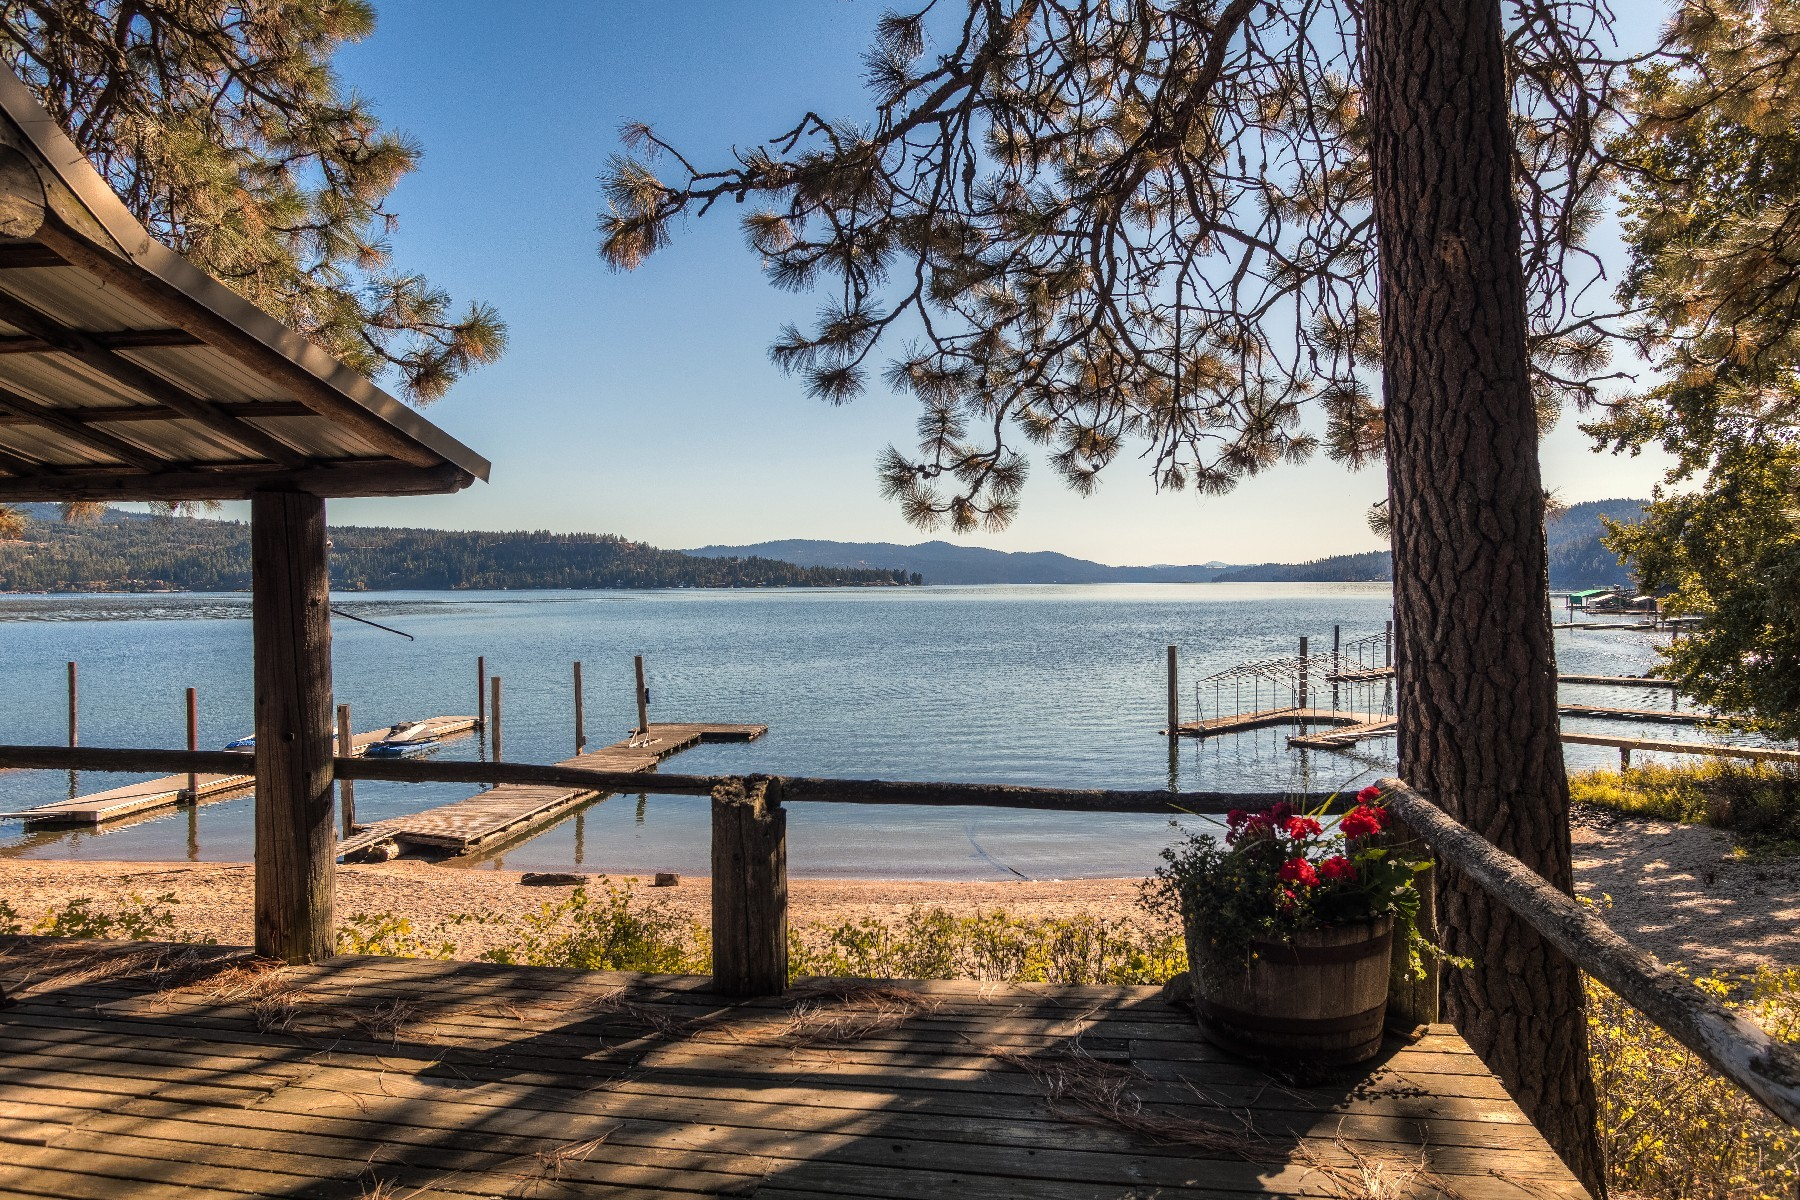 Single Family Homes for Active at Waterfront Swede Bay Cabin with Acreage 1460 W Swede Bay Rd Coeur D Alene, Idaho 83814 United States